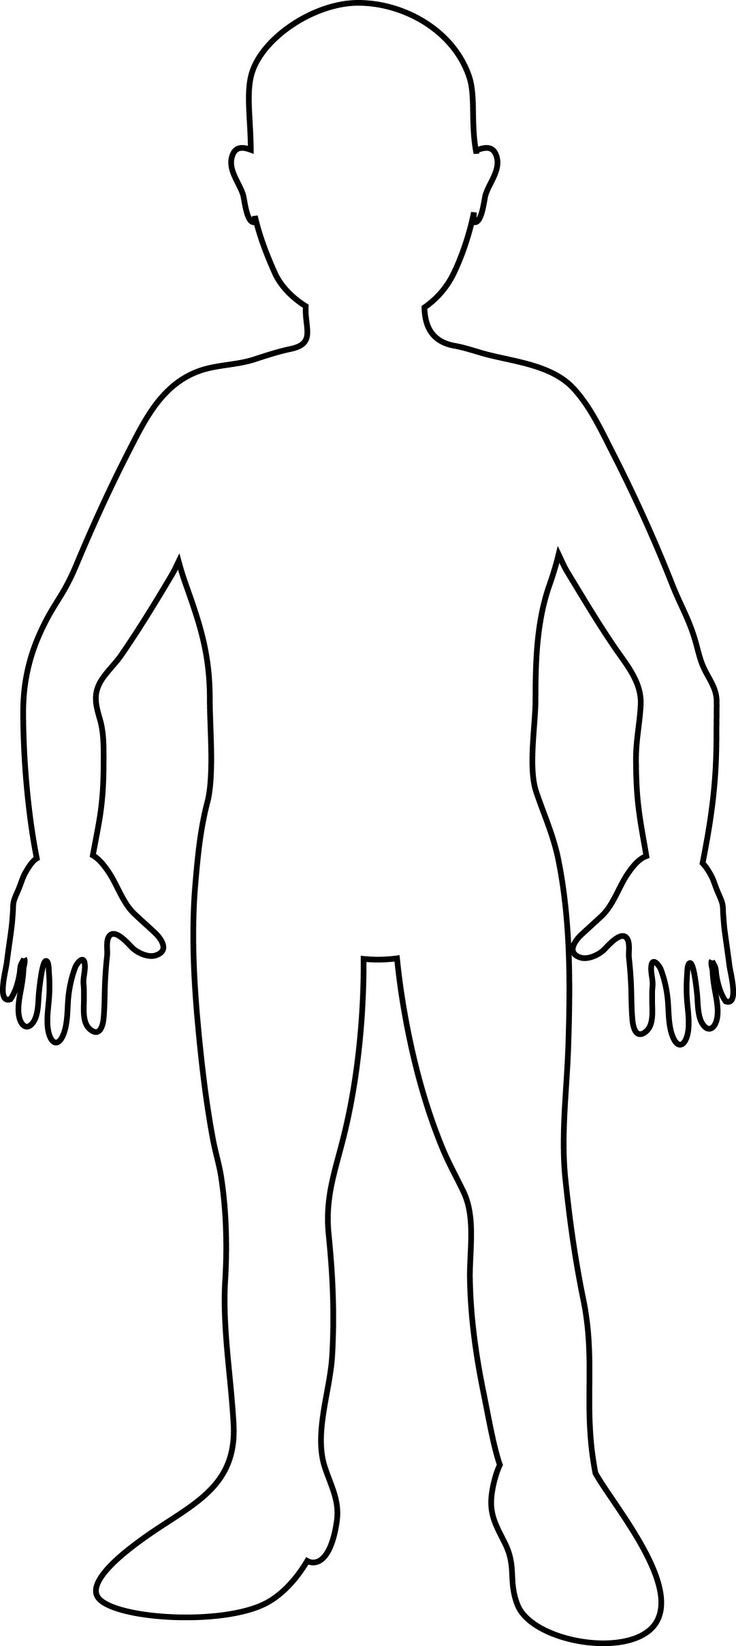 Human Body Outline Drawing Human Body Outline Printable Cliparts